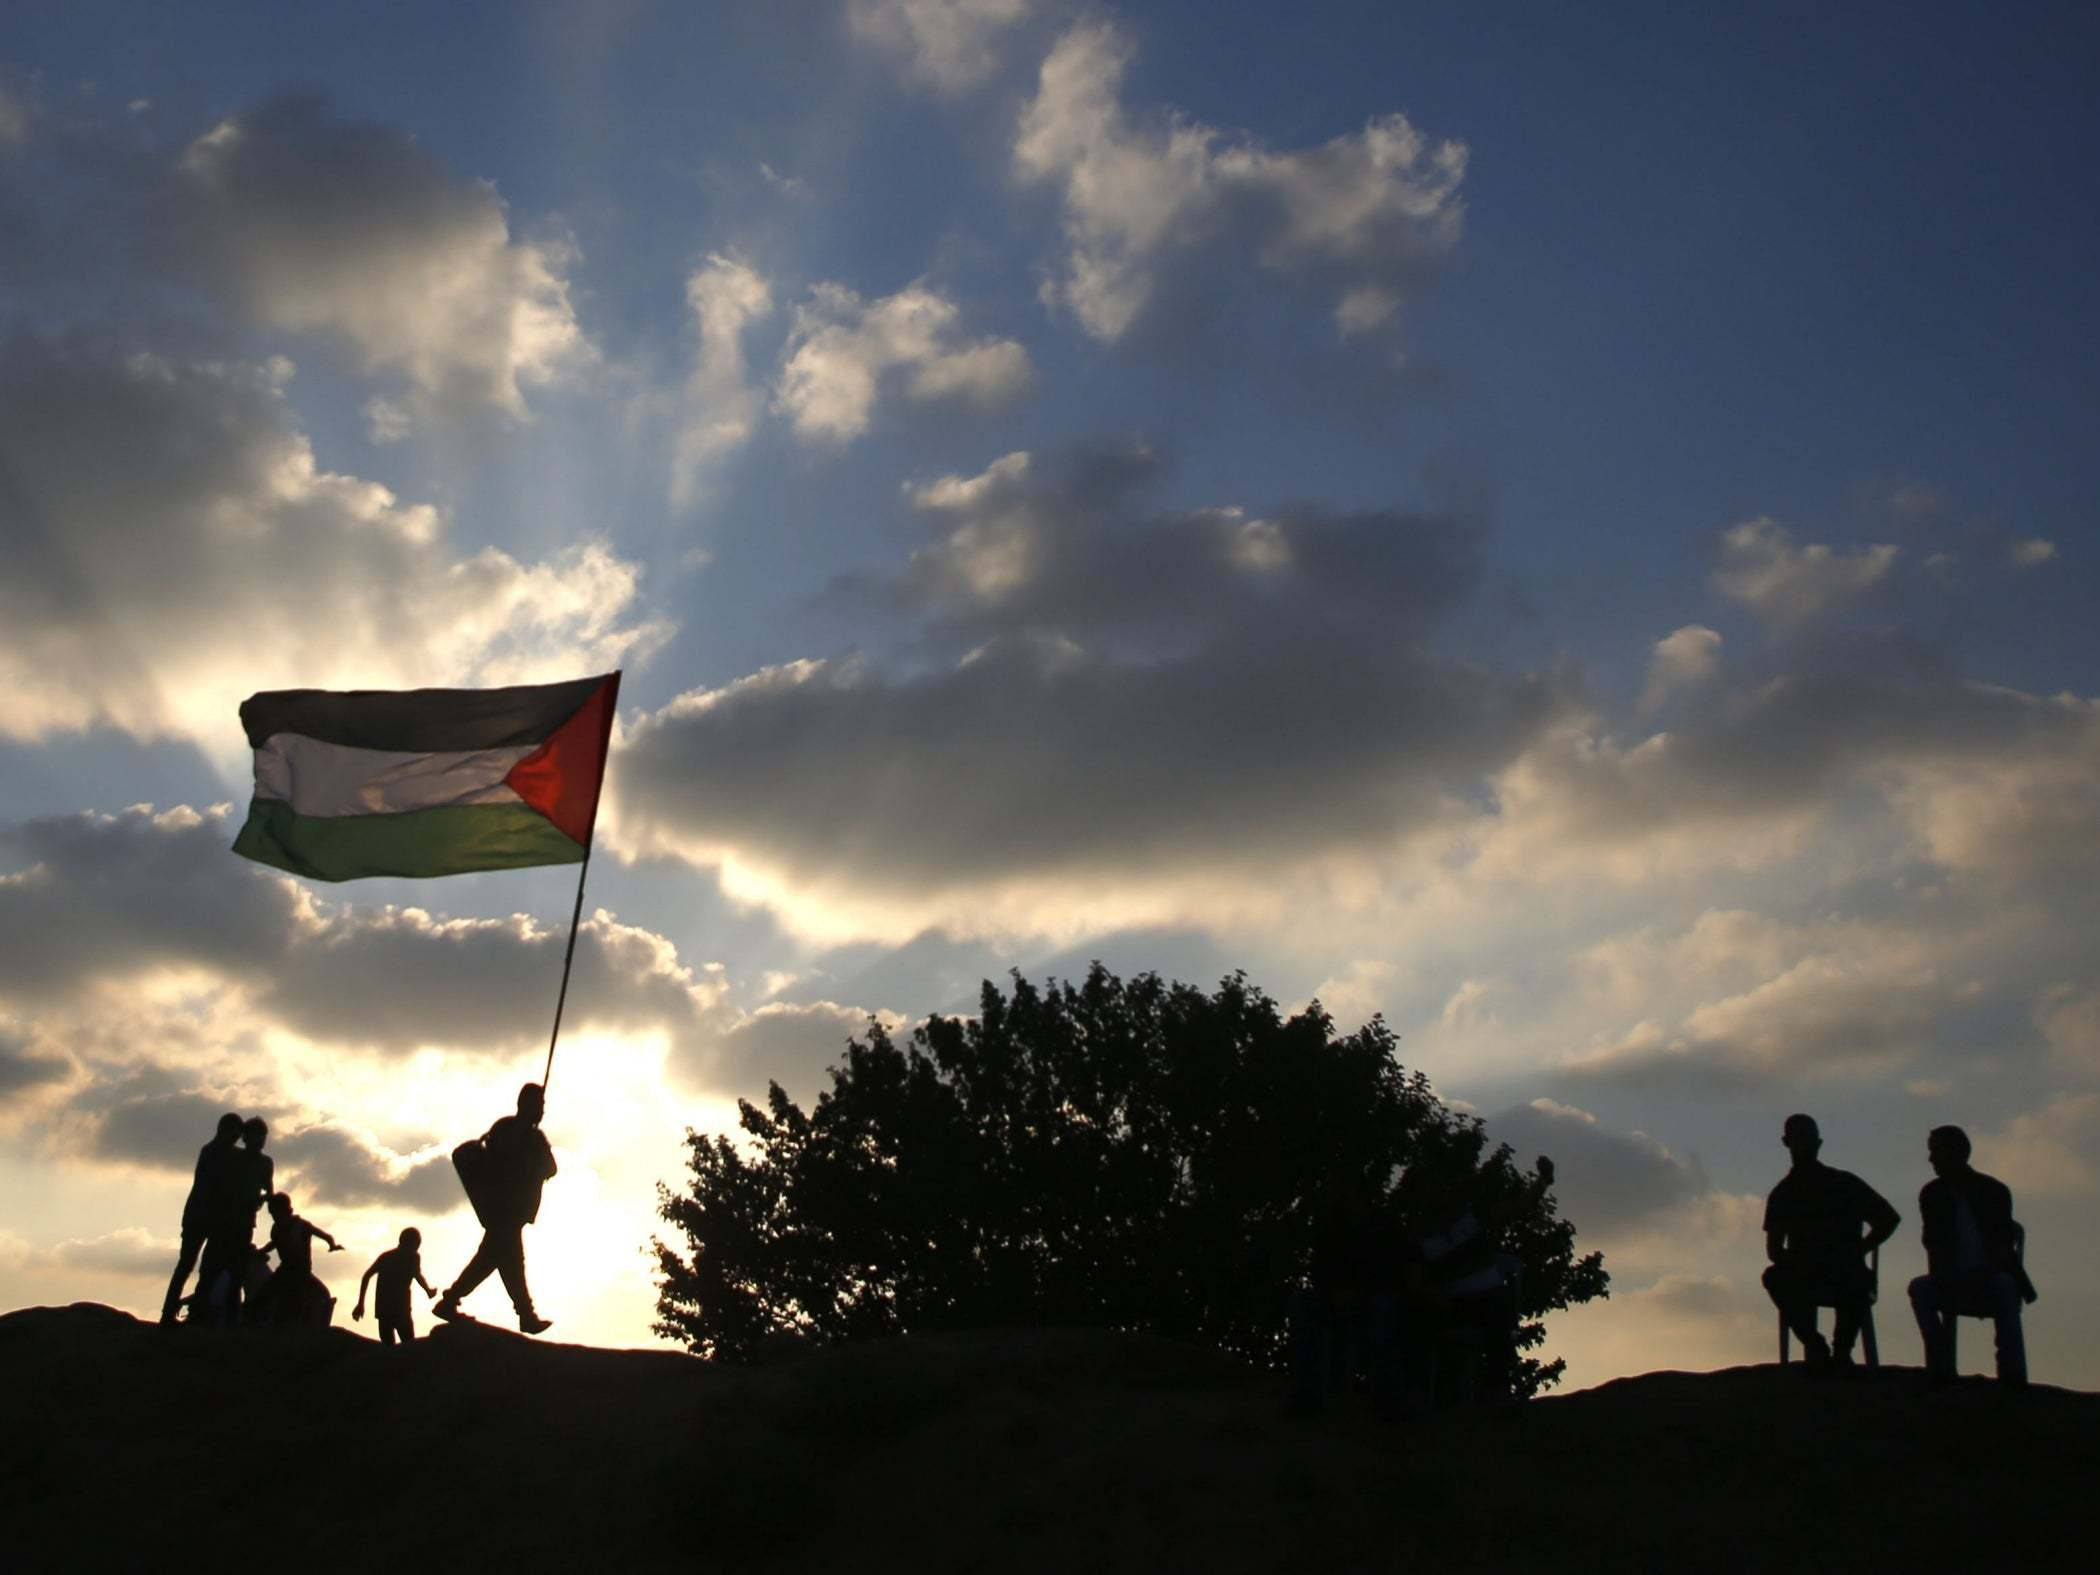 Gaza - latest news, breaking stories and comment - The